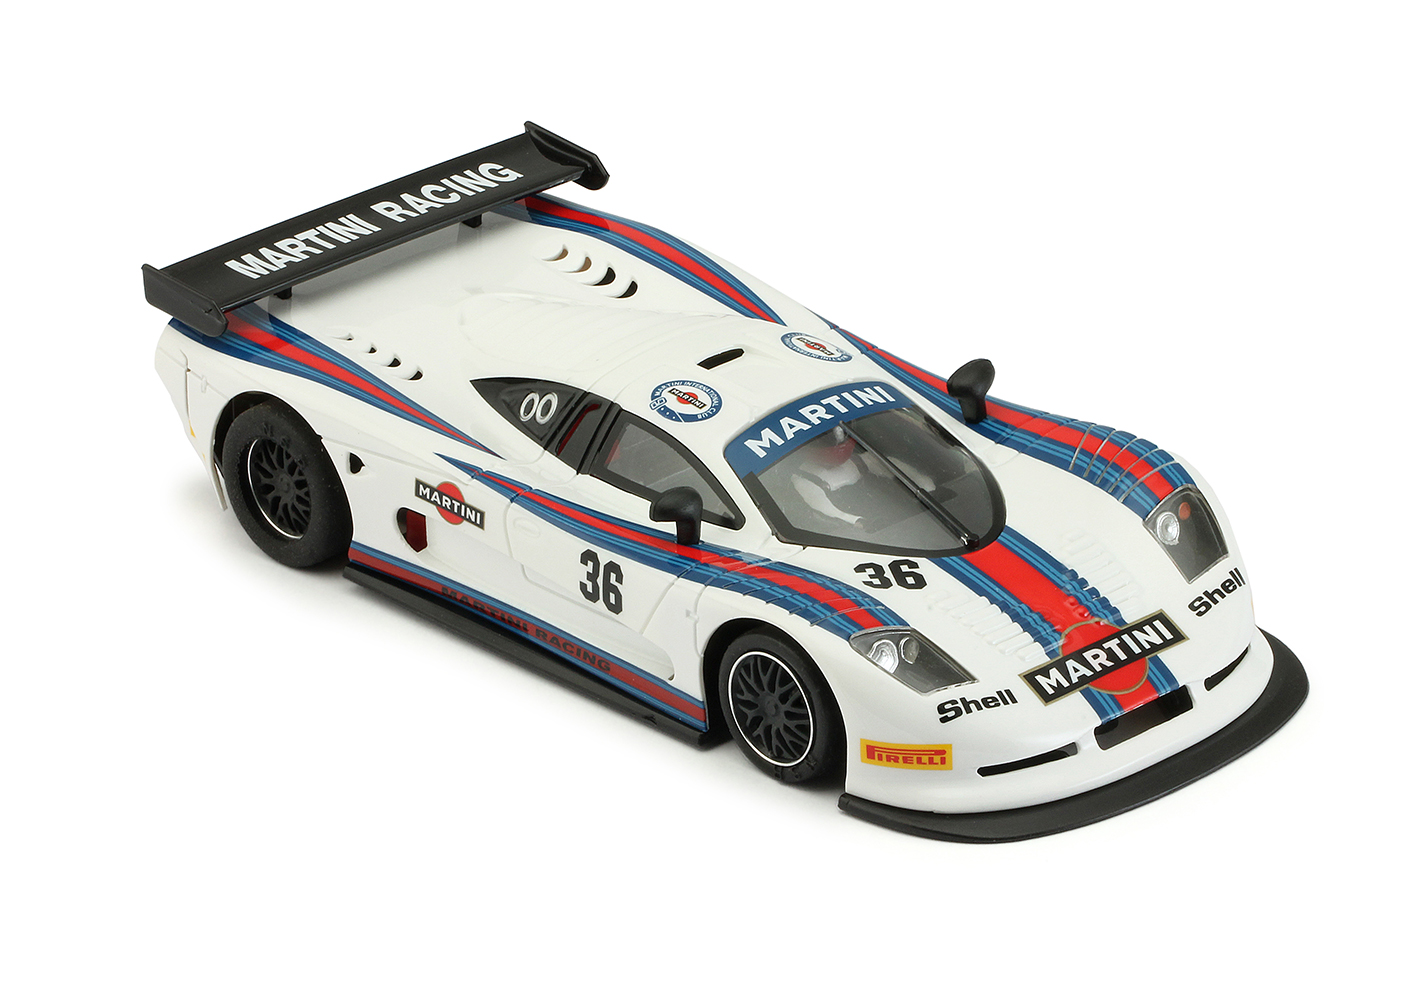 NSR 0150AW Mosler MT900R EVO5 Martini Racing White, No.36